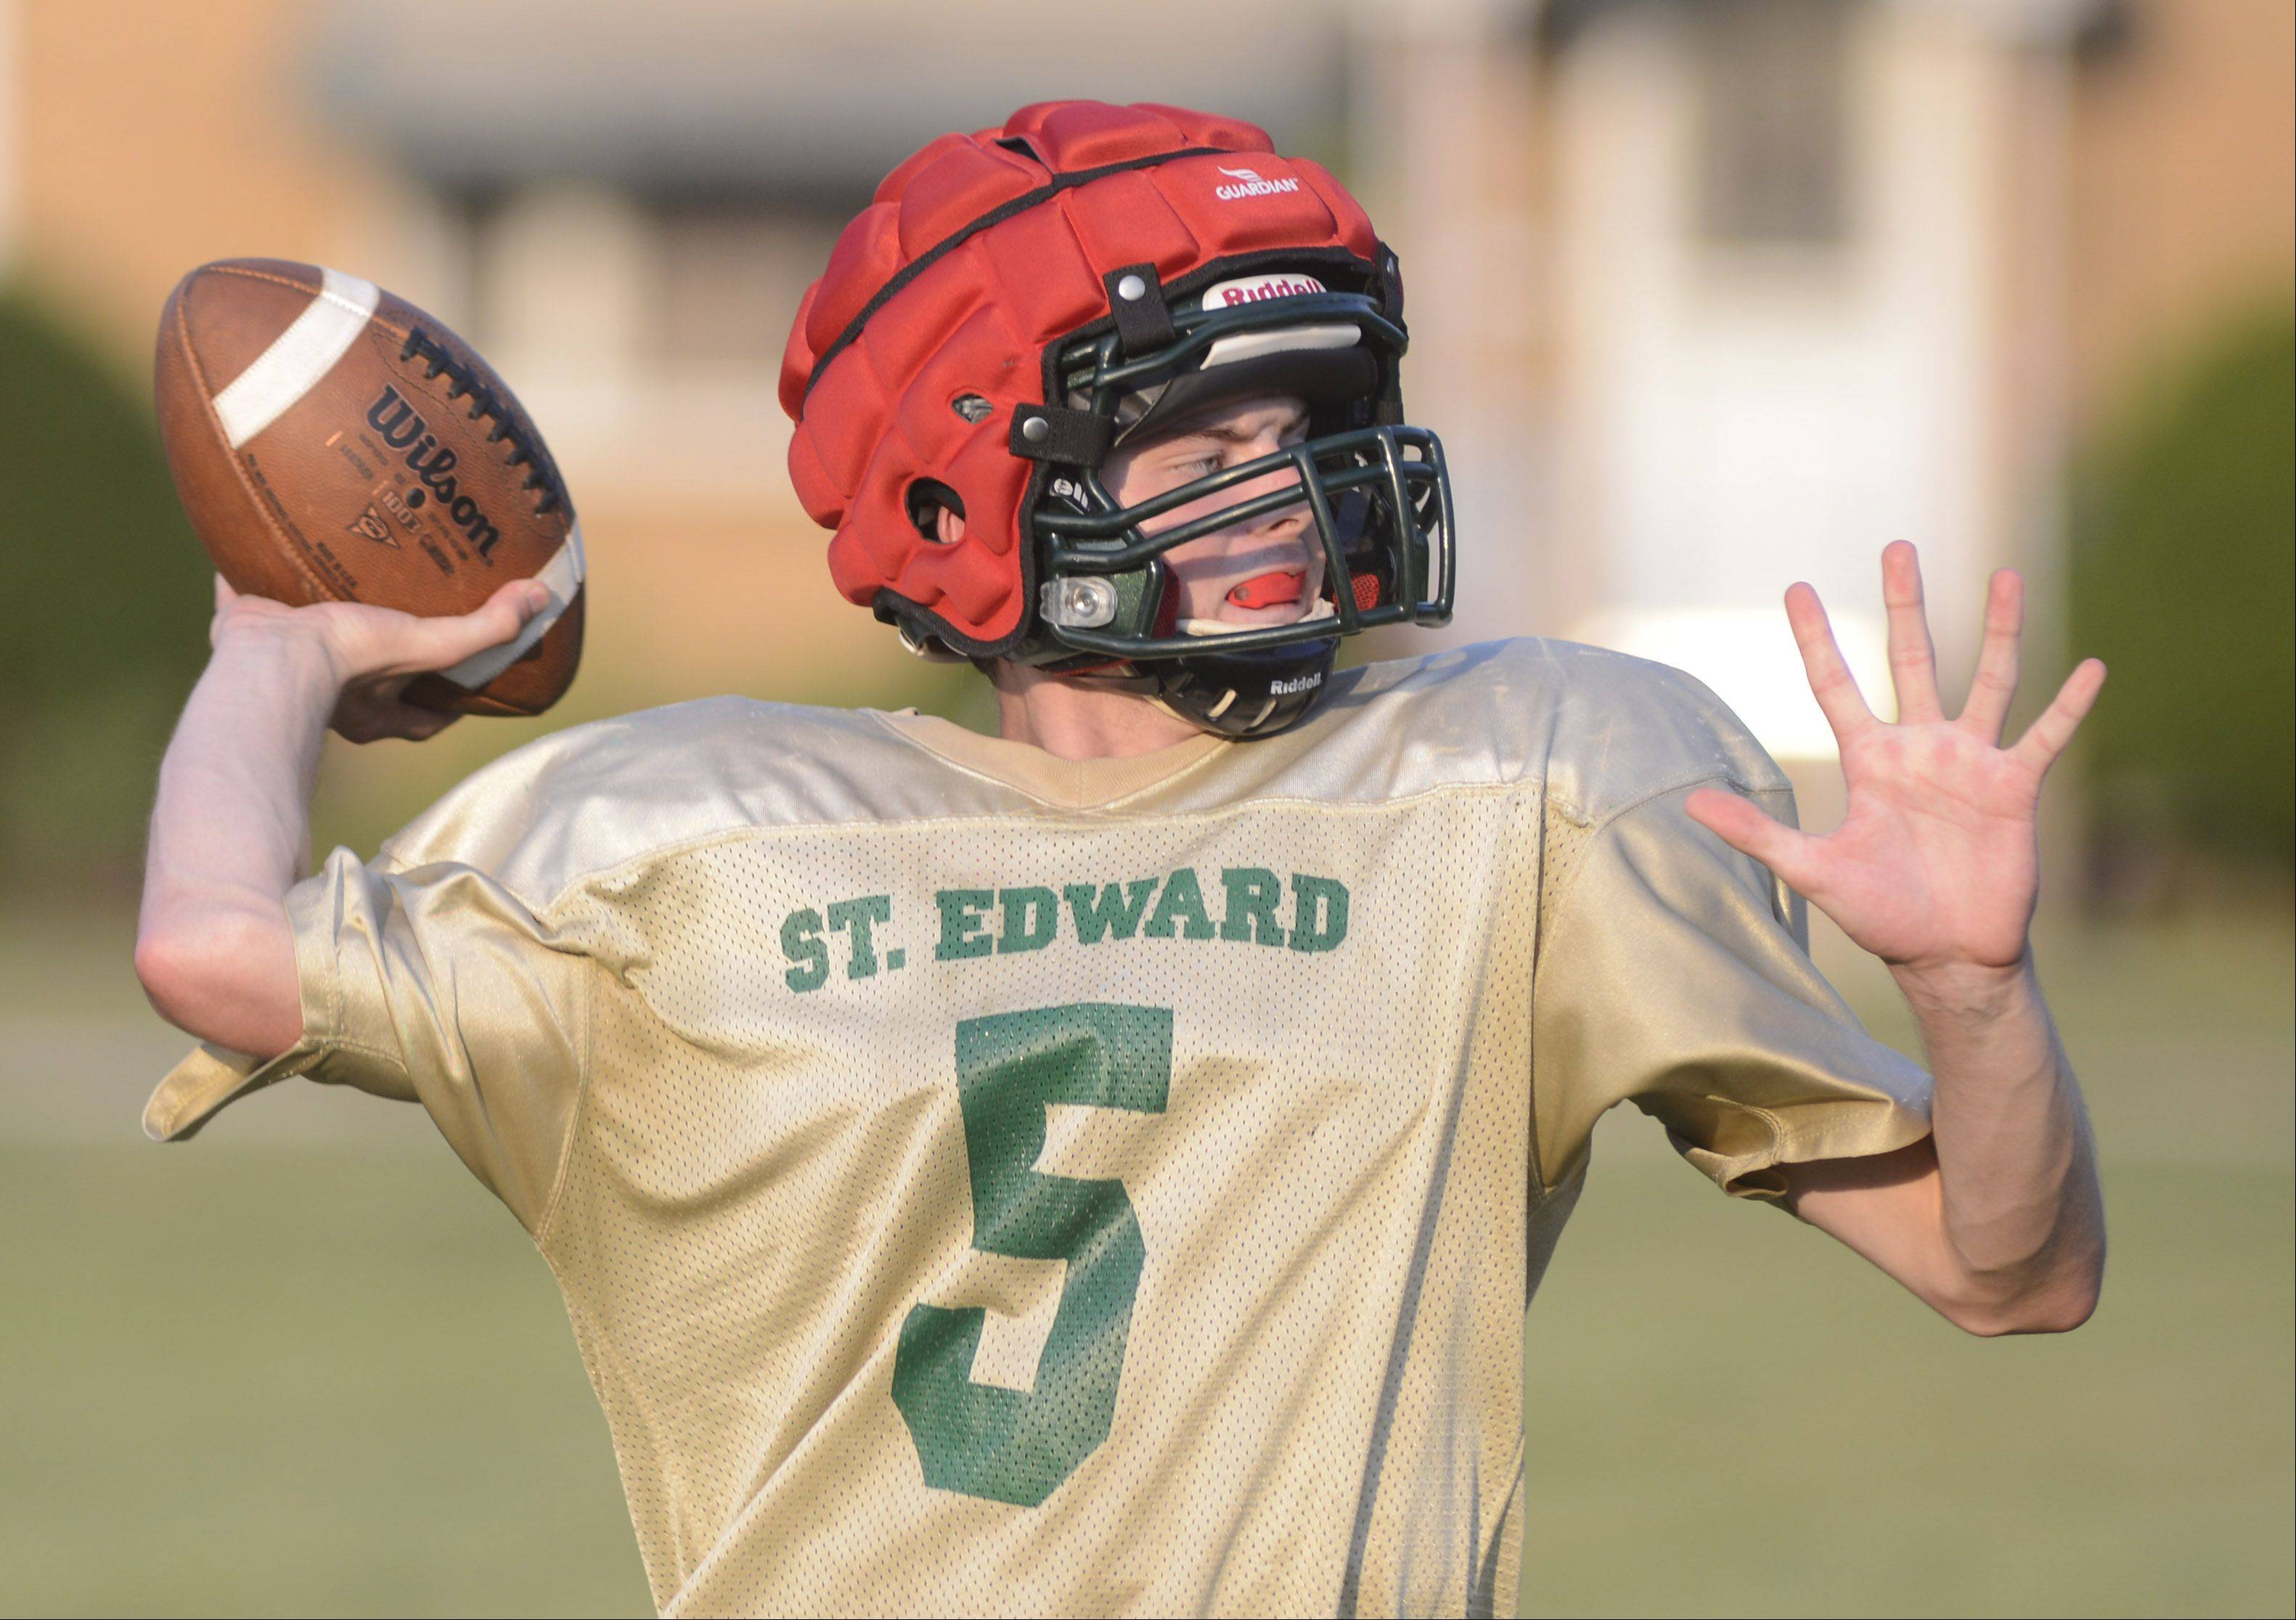 St. Edward quarterback Bryan O'Neill throws a passes during practice.